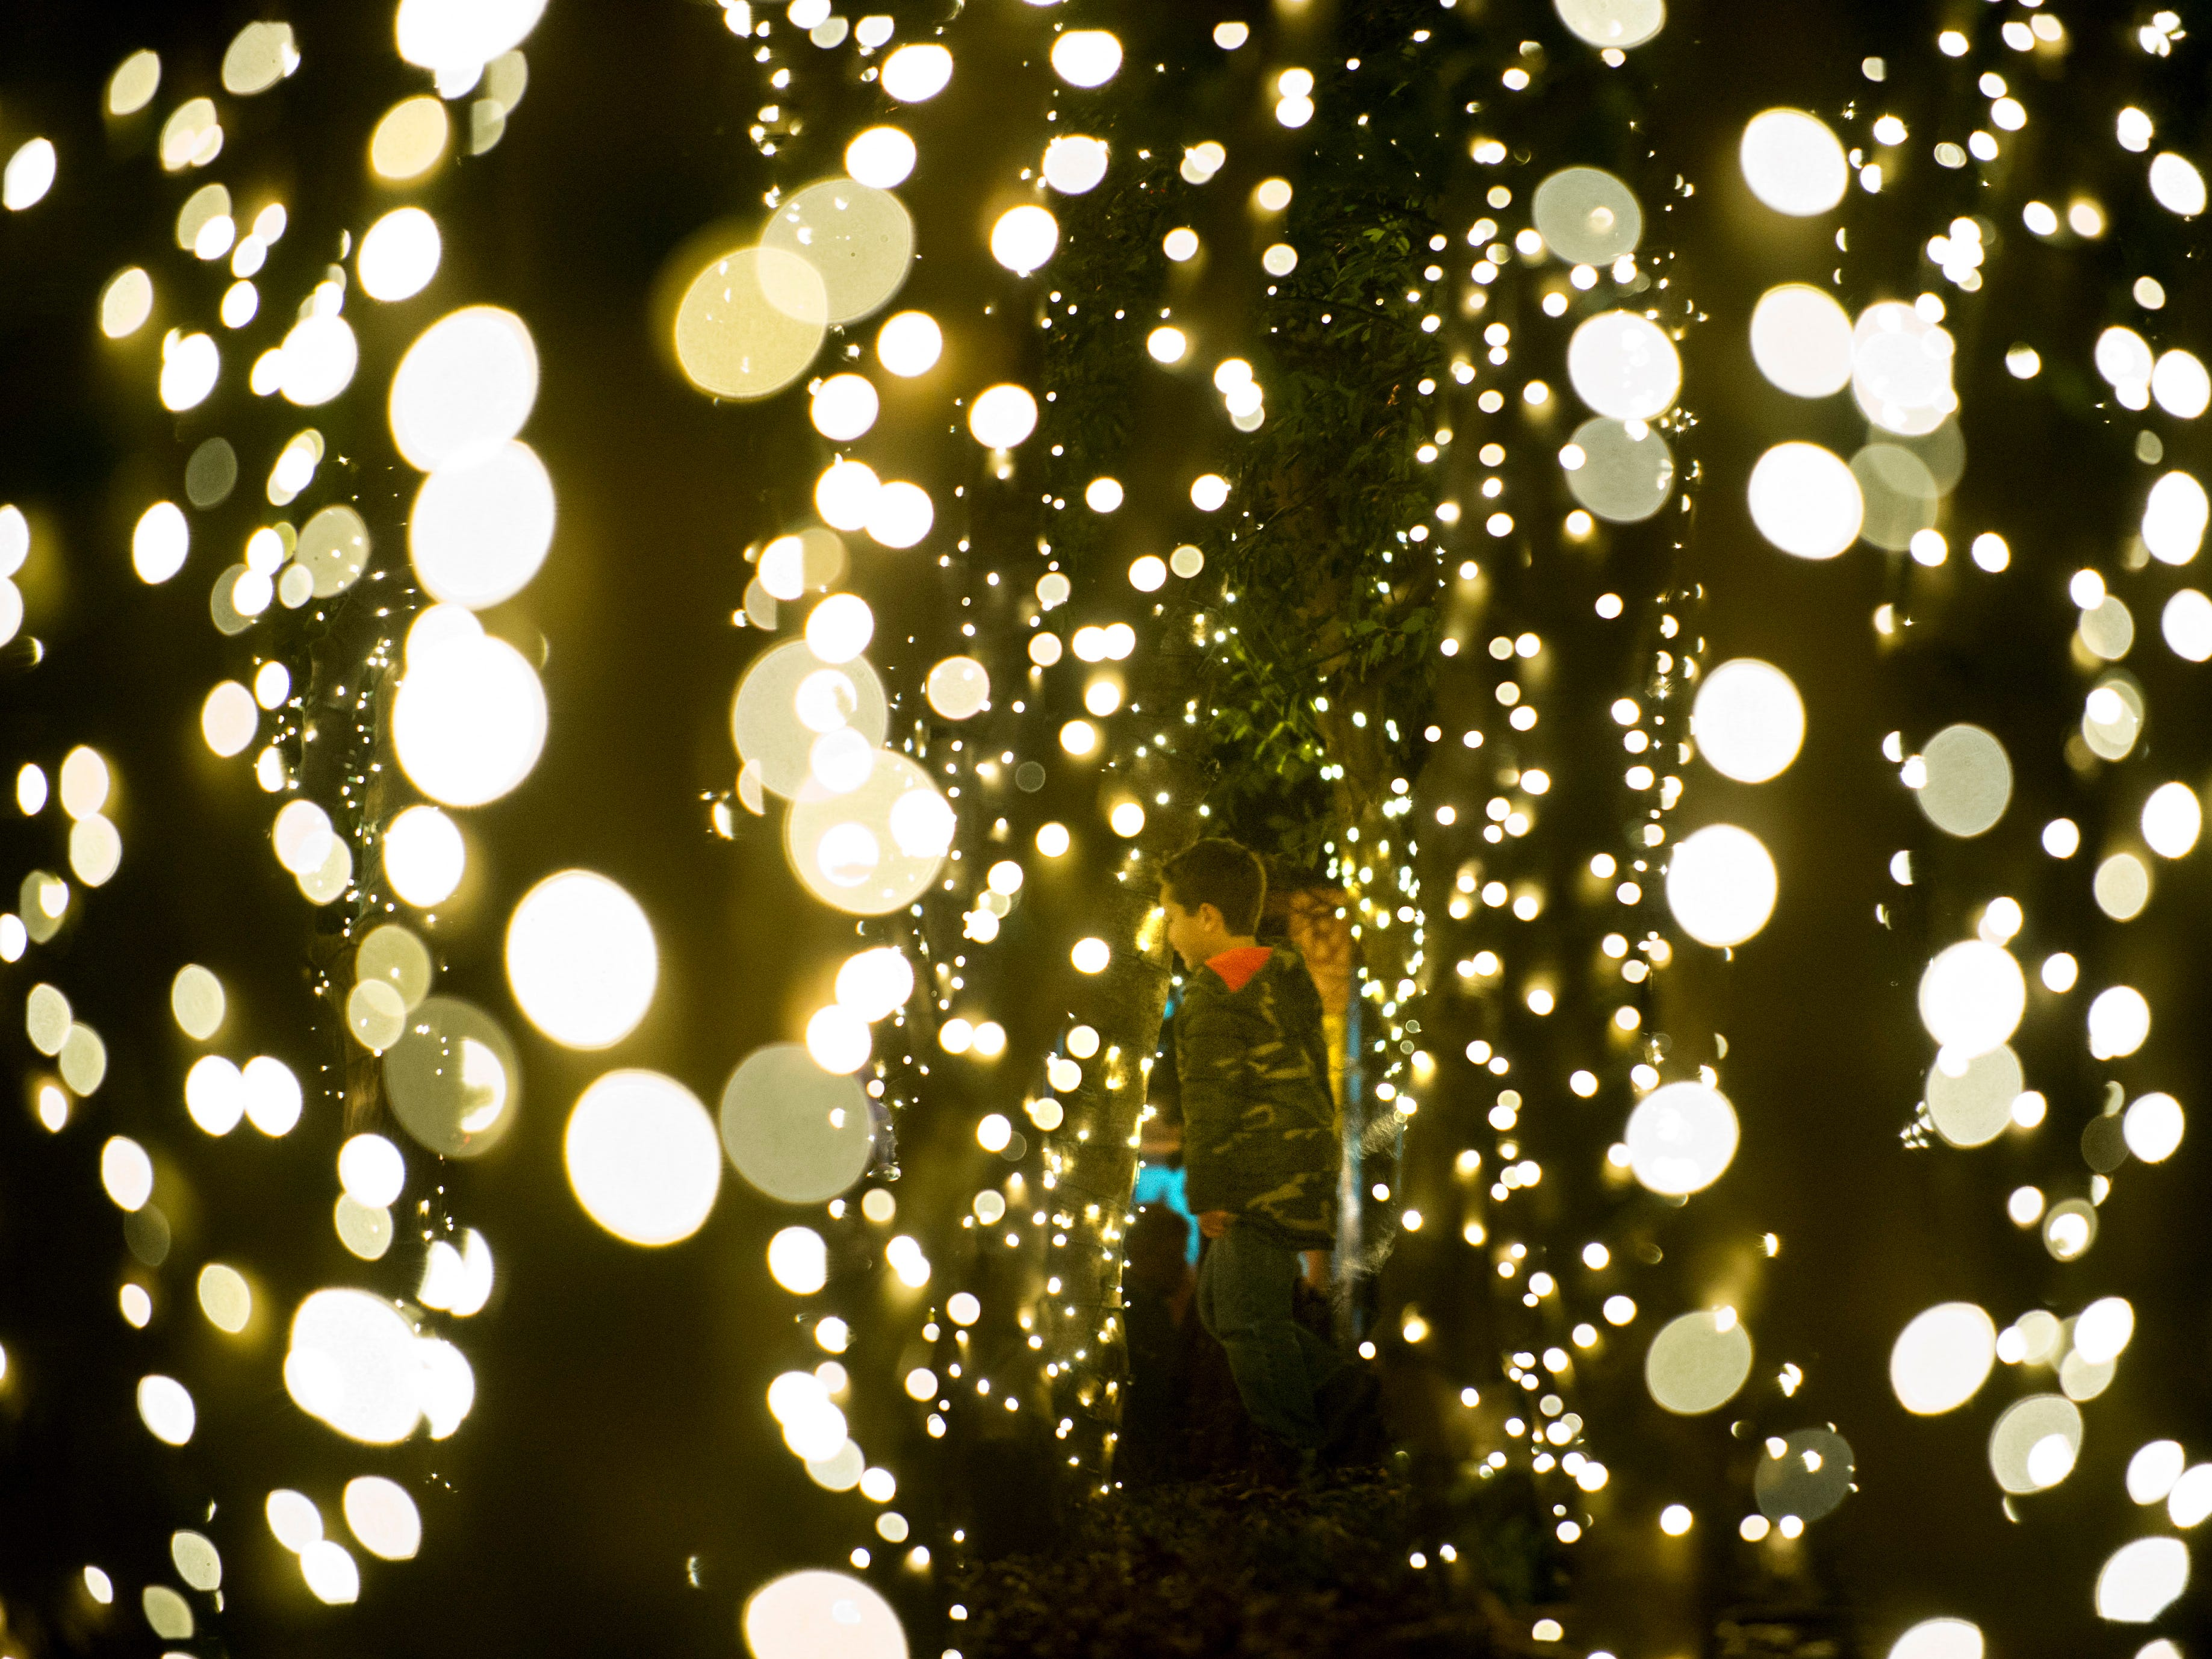 A young reveler runs between trees lit in Krutch Park for the Regal Celebration of Lights during Christmas in the City festivities in downtown Knoxville on Friday, Nov. 28, 2014.]